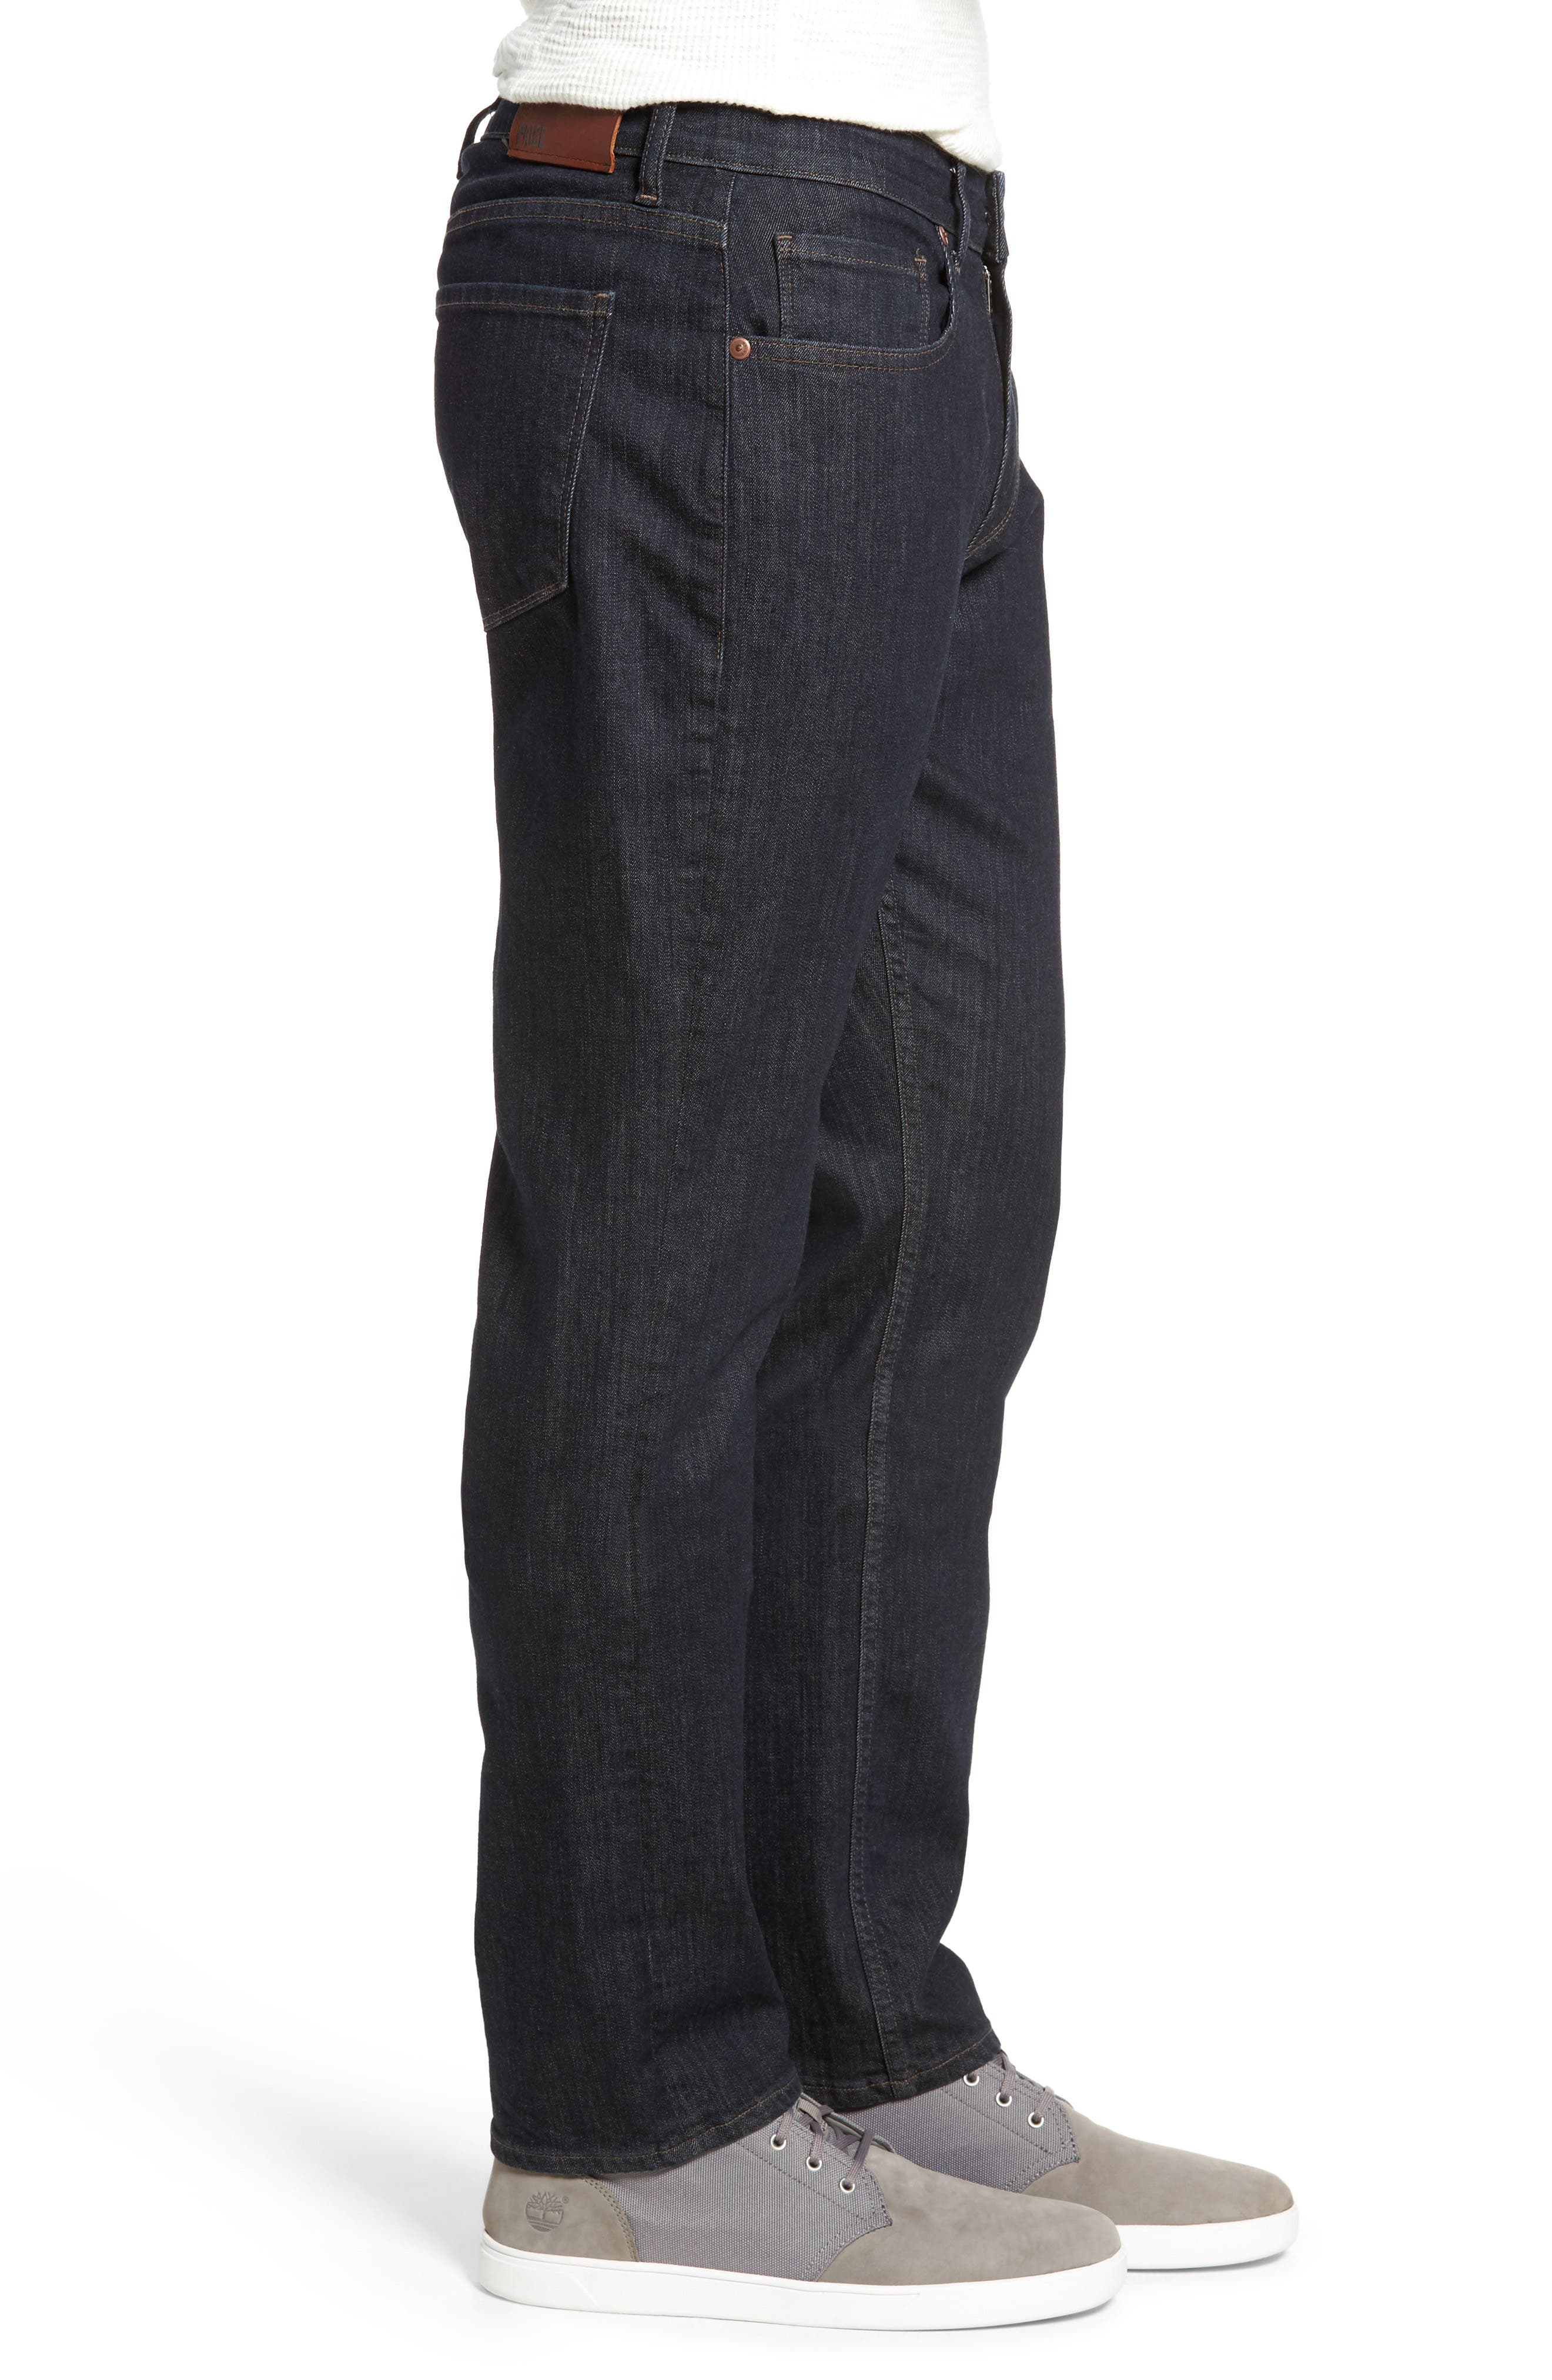 Normandie Straight Leg Jeans,                             Alternate thumbnail 3, color,                             FILLMORE